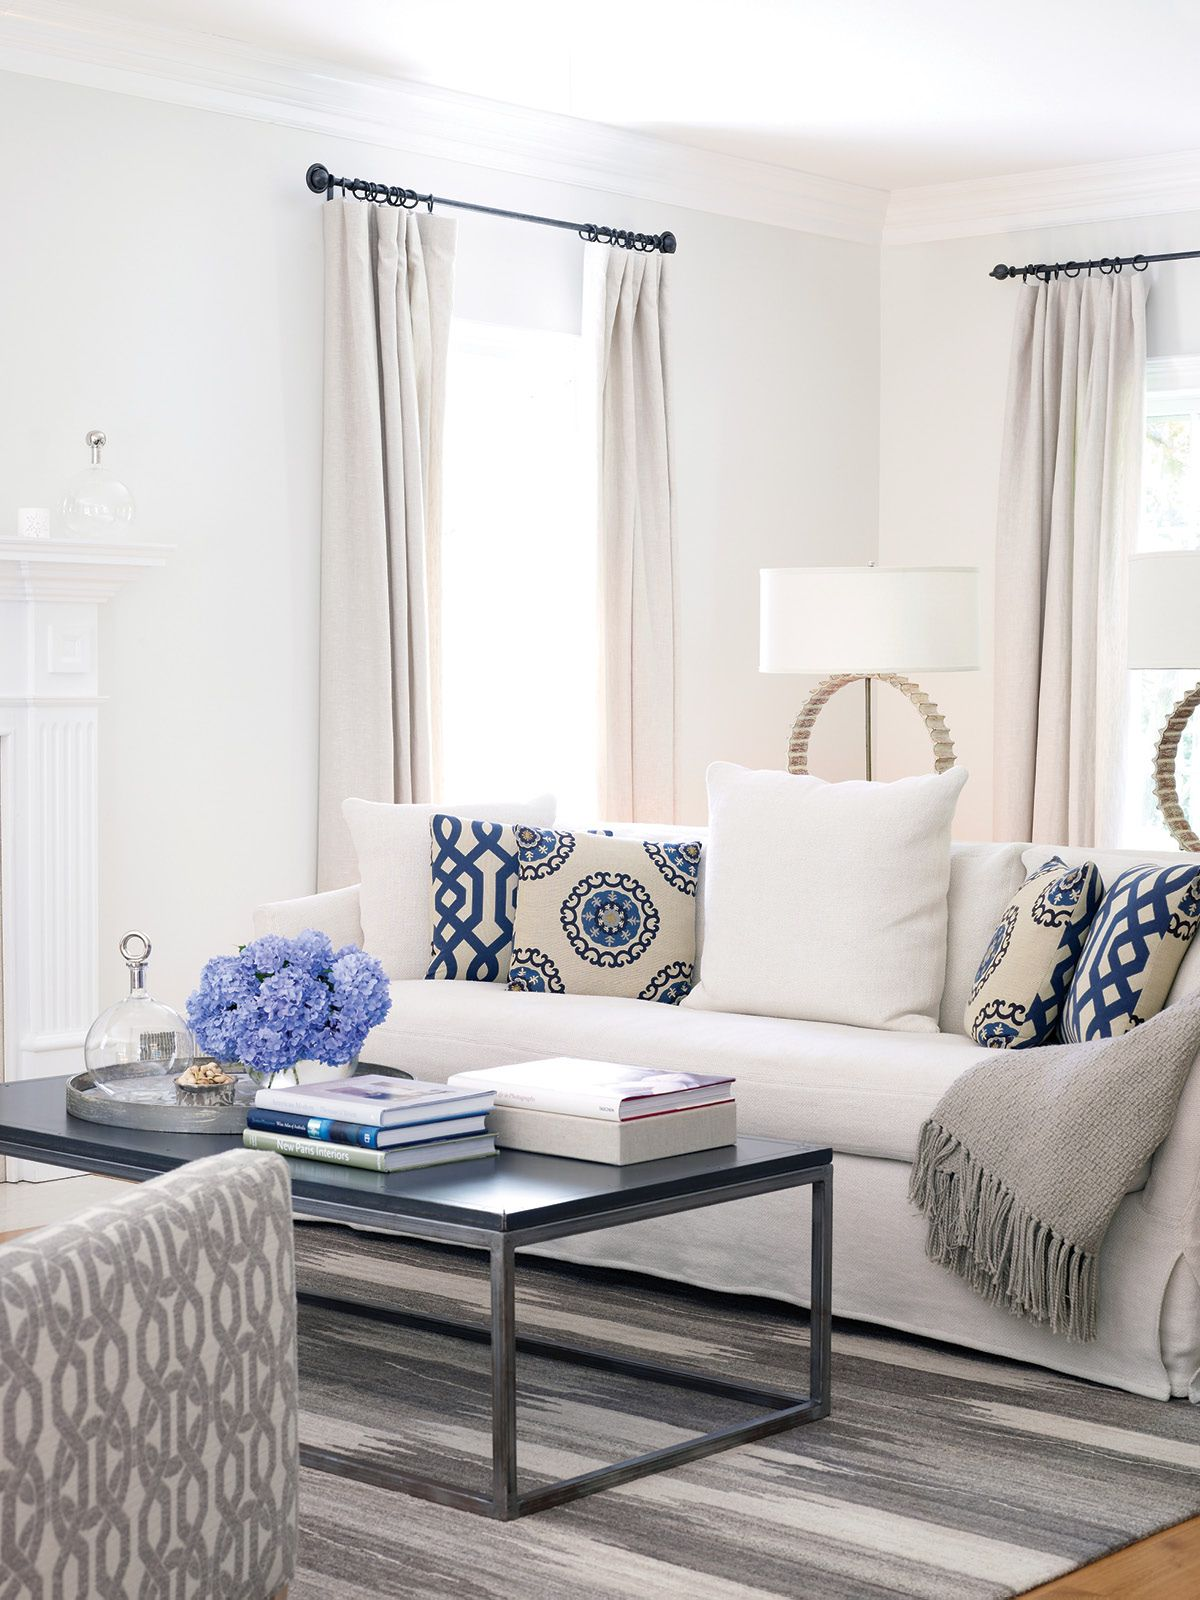 Unique Blue and White Living Room Design Ideas | Living rooms ...